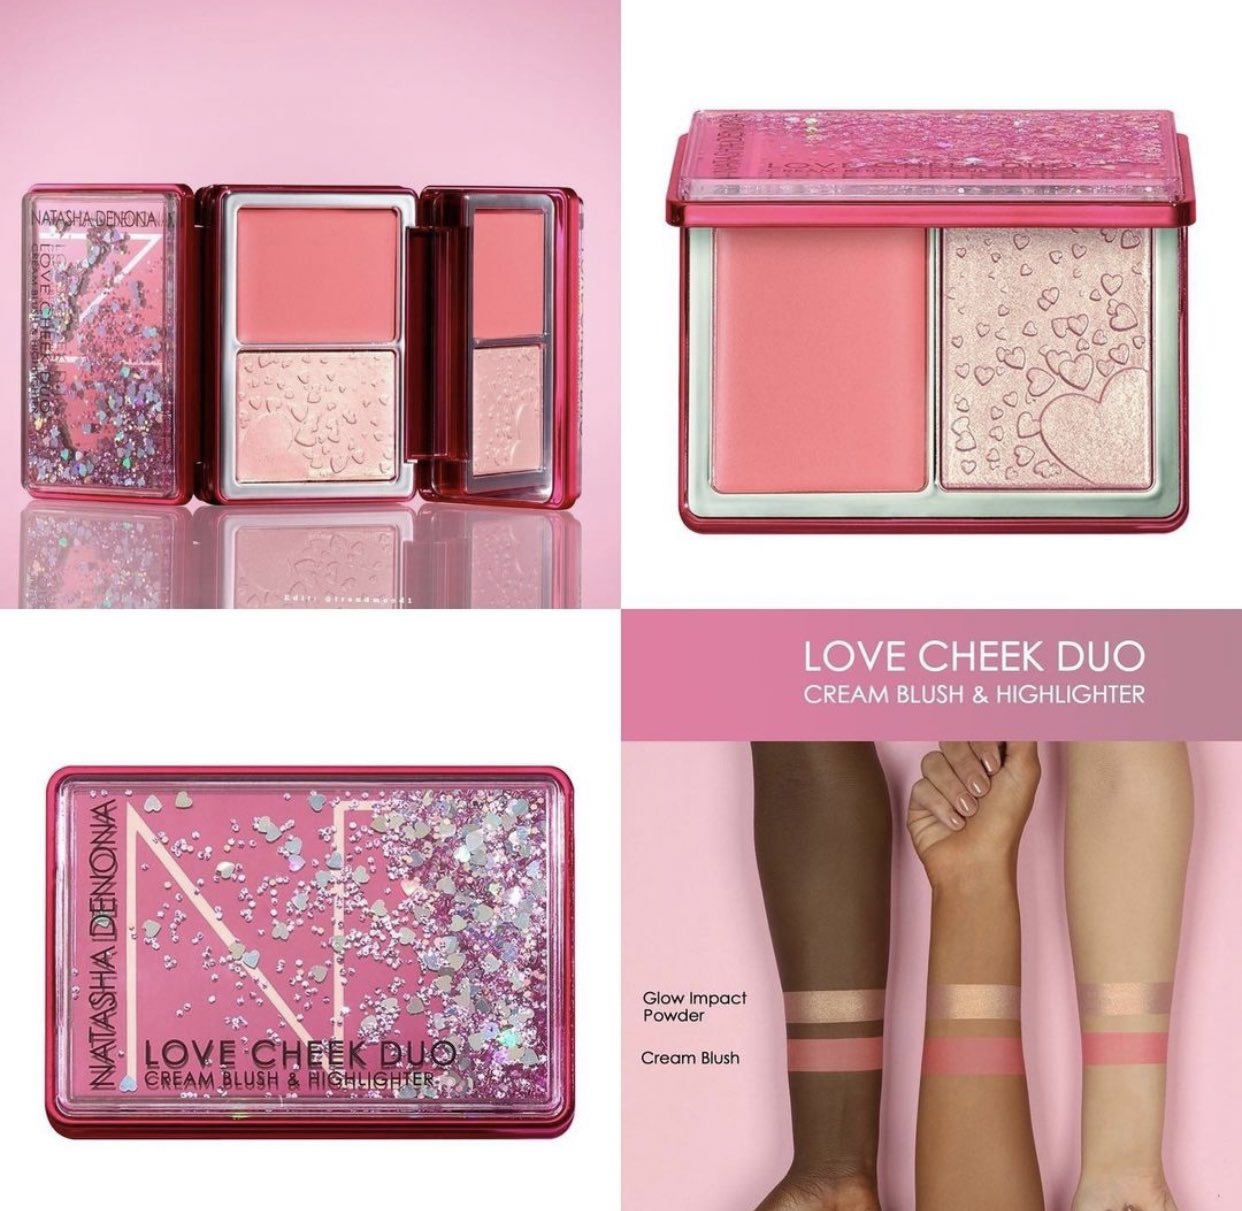 3 2 - Natasha Denona Love Mini Collection 2021